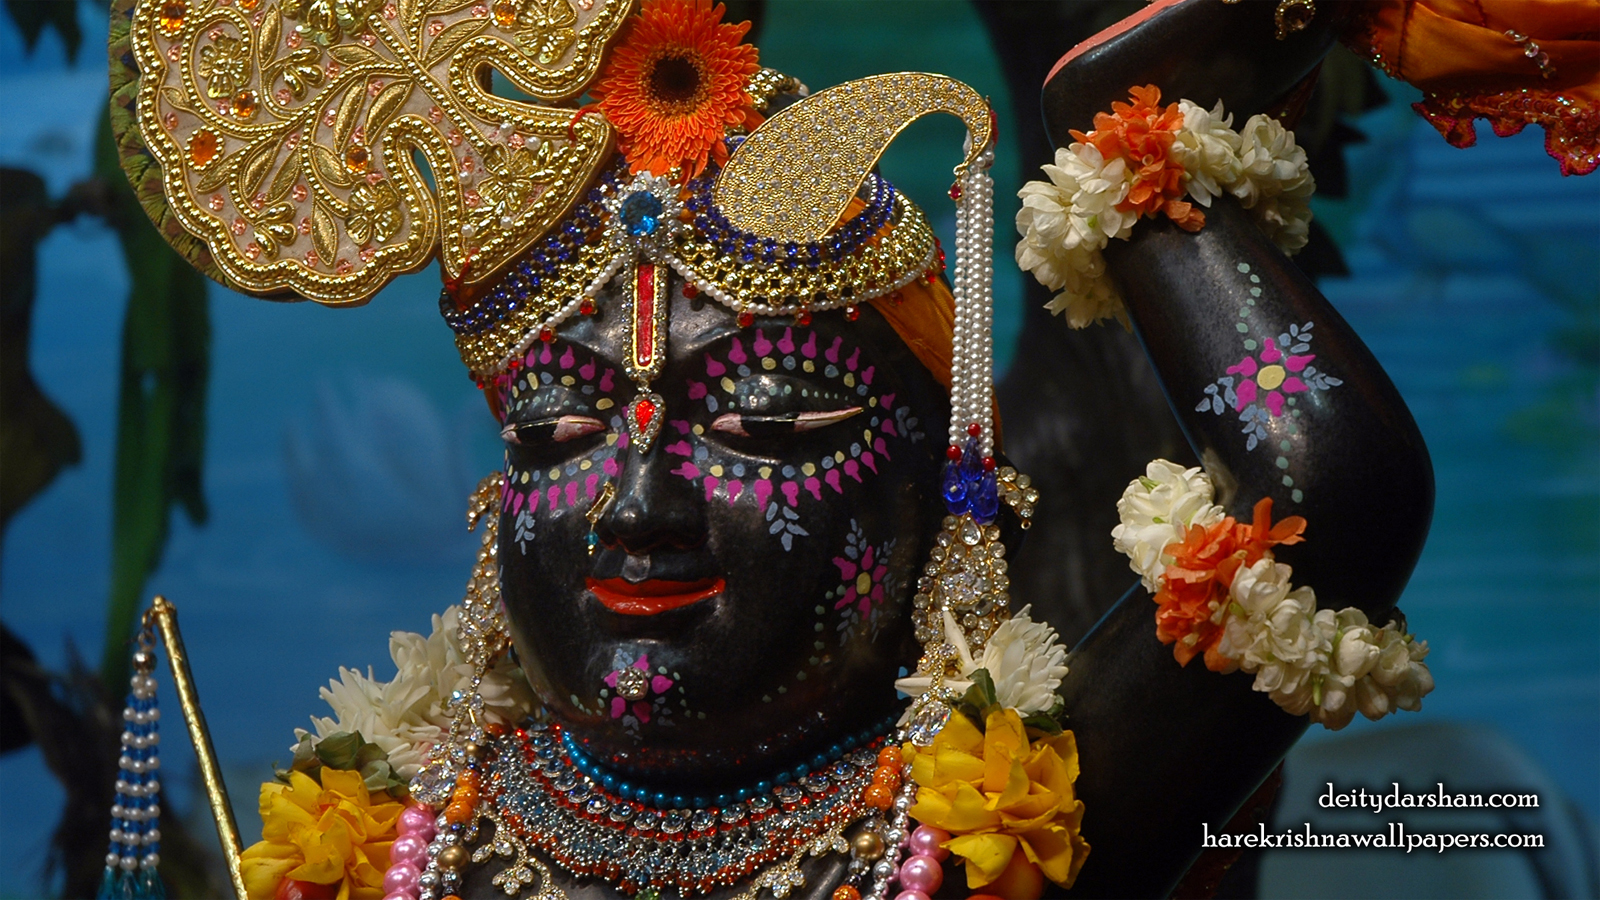 Sri Gopal Close up Wallpaper (045) Size 1600x900 Download